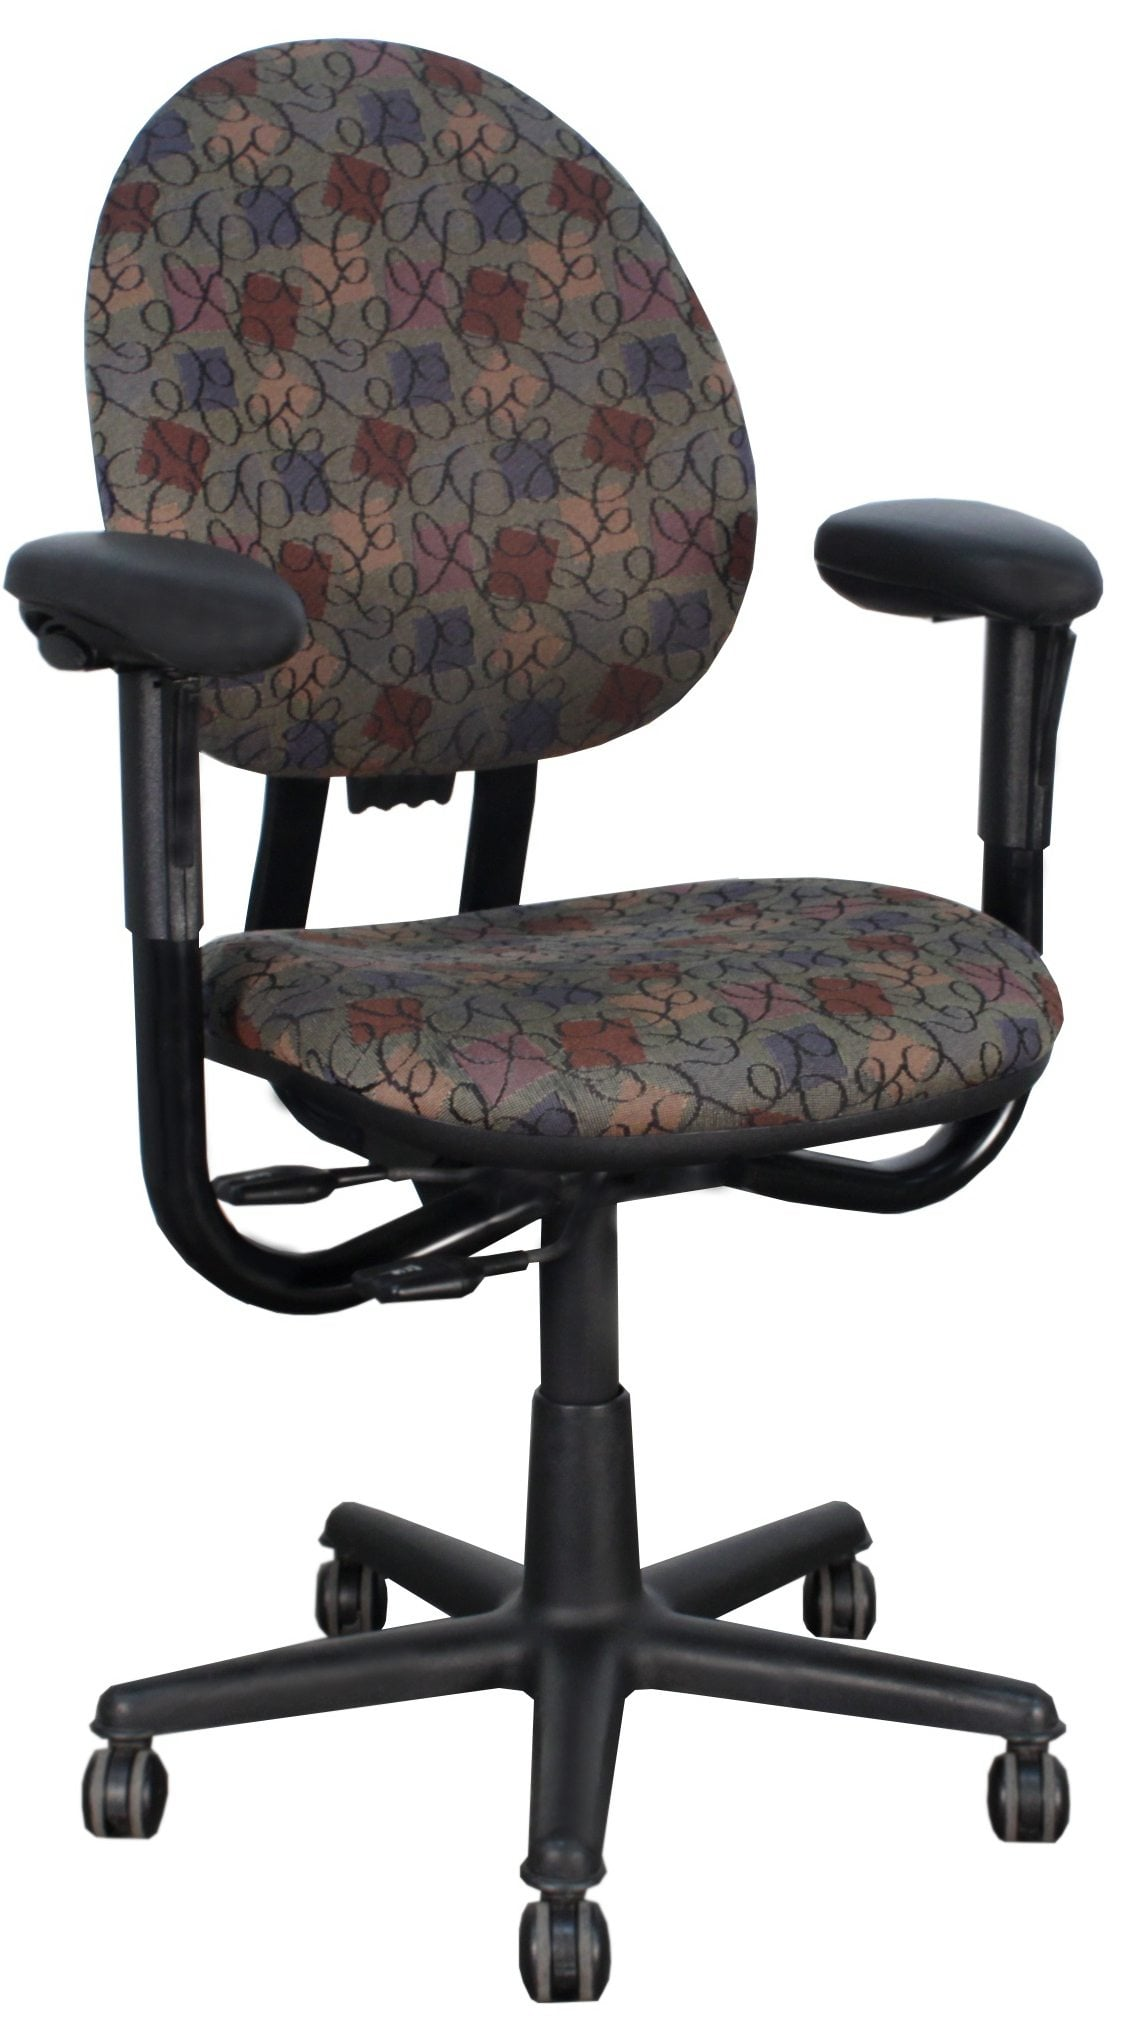 Steelcase Chairs Steelcase Criterion Used High Back Series Task Chair